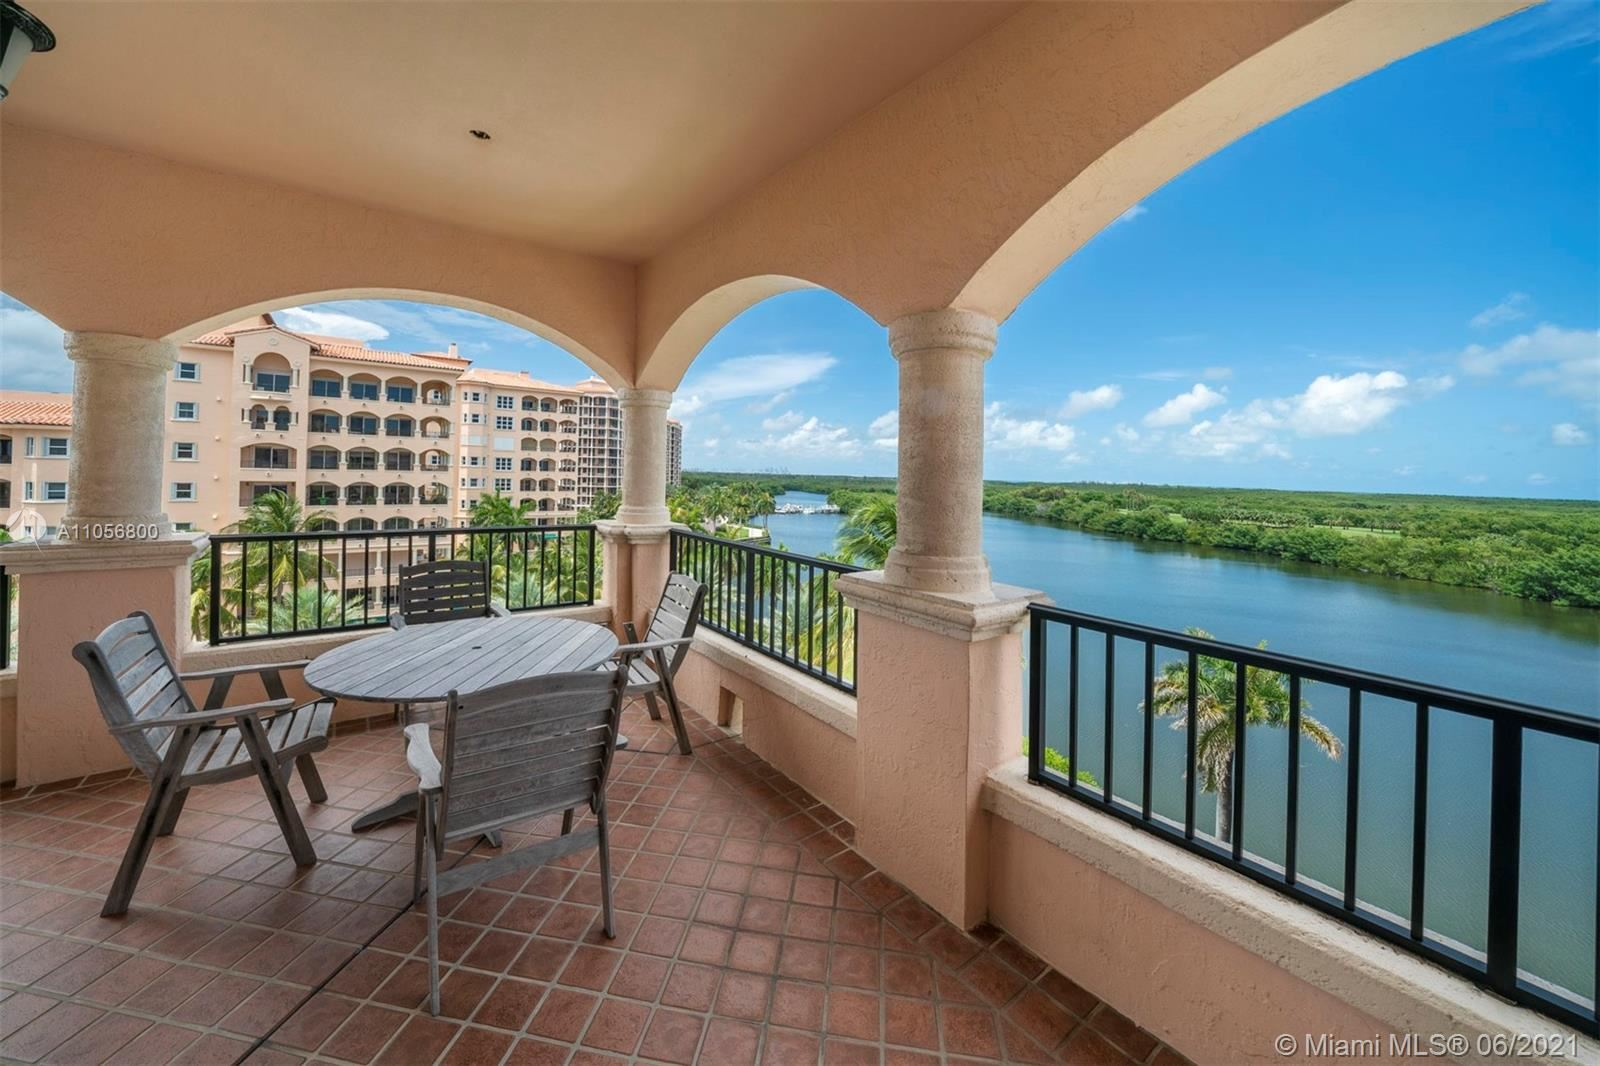 Photo of 13643 Deering Bay Dr #165, Coral Gables, FL 33158 (MLS # A11056800)